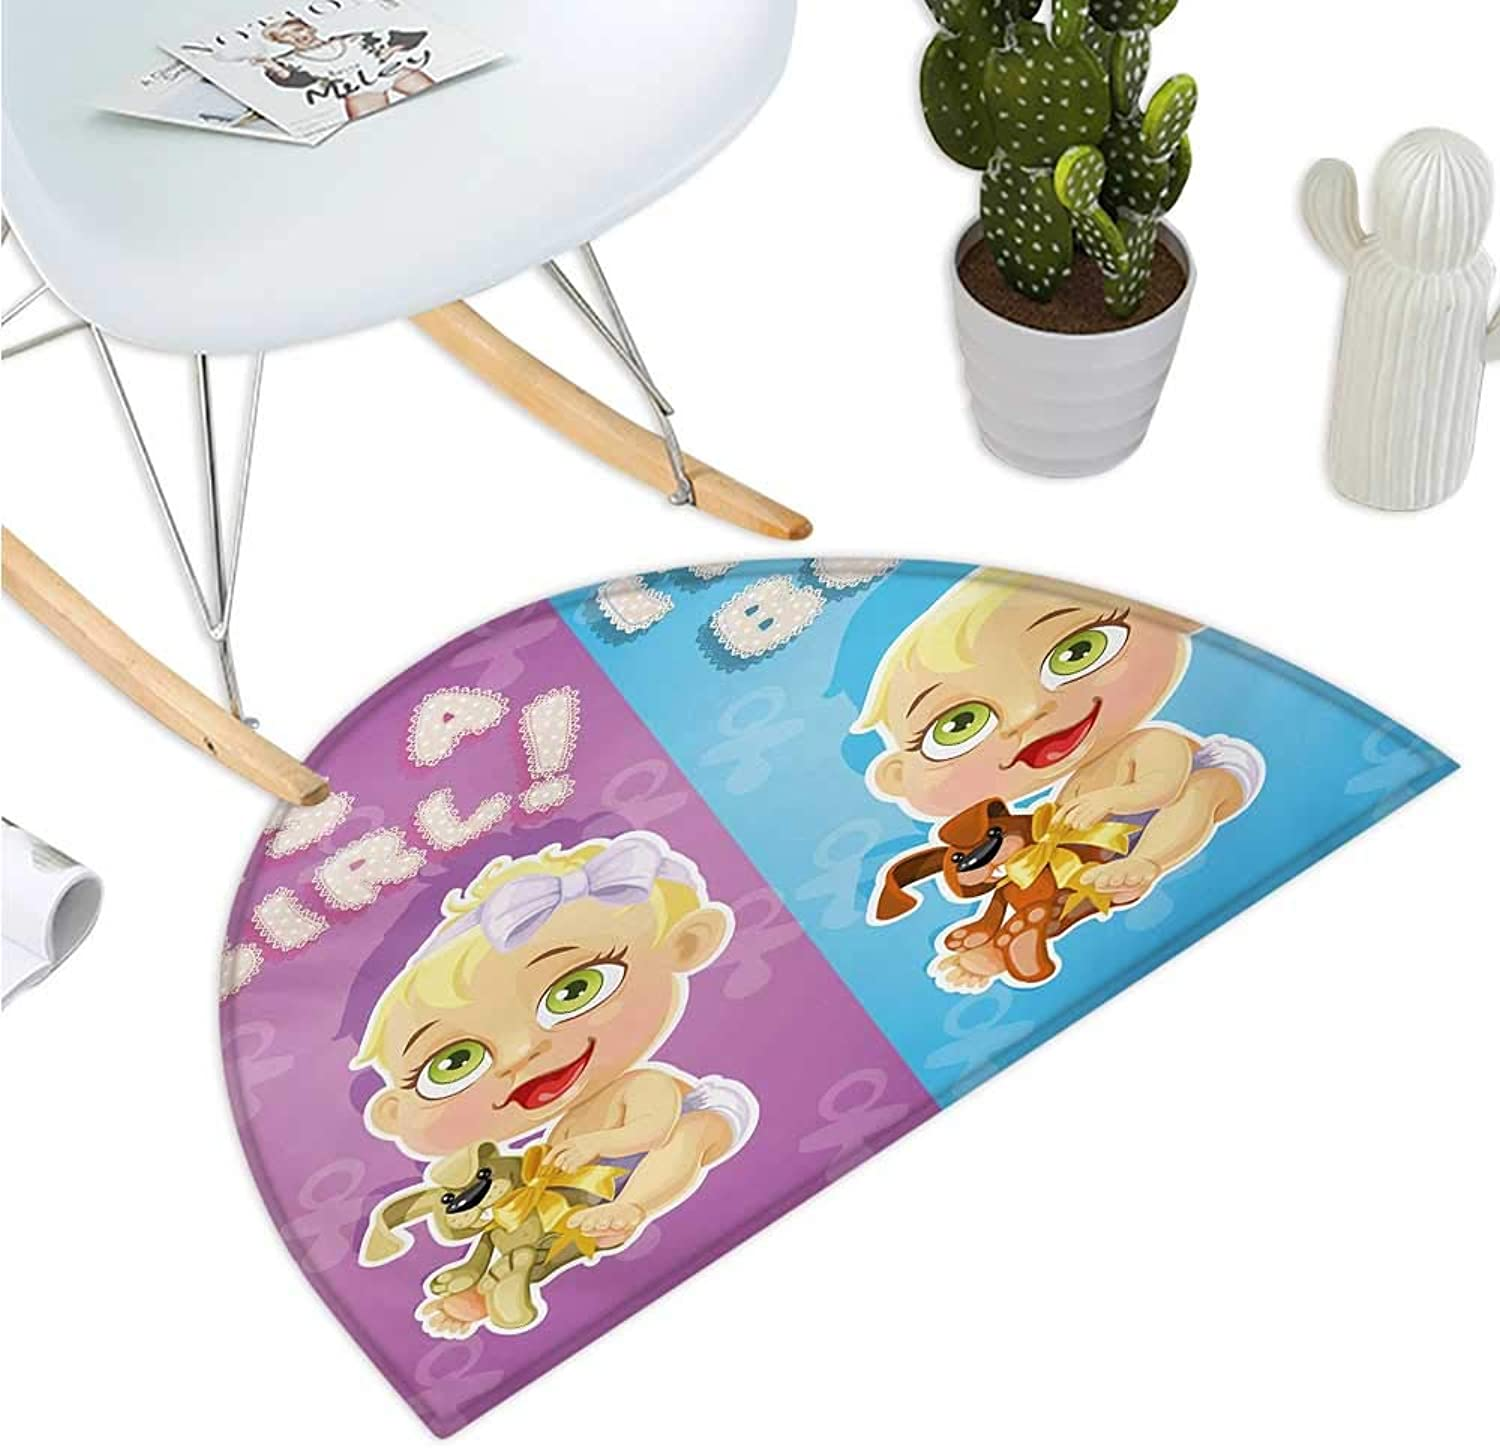 Gender Reveal Semicircular Cushion Girl and Baby Boy with Dogs Puppy Cute Figures Congratulations Birthday Theme Halfmoon doormats H 51.1  xD 76.7  Multicolor